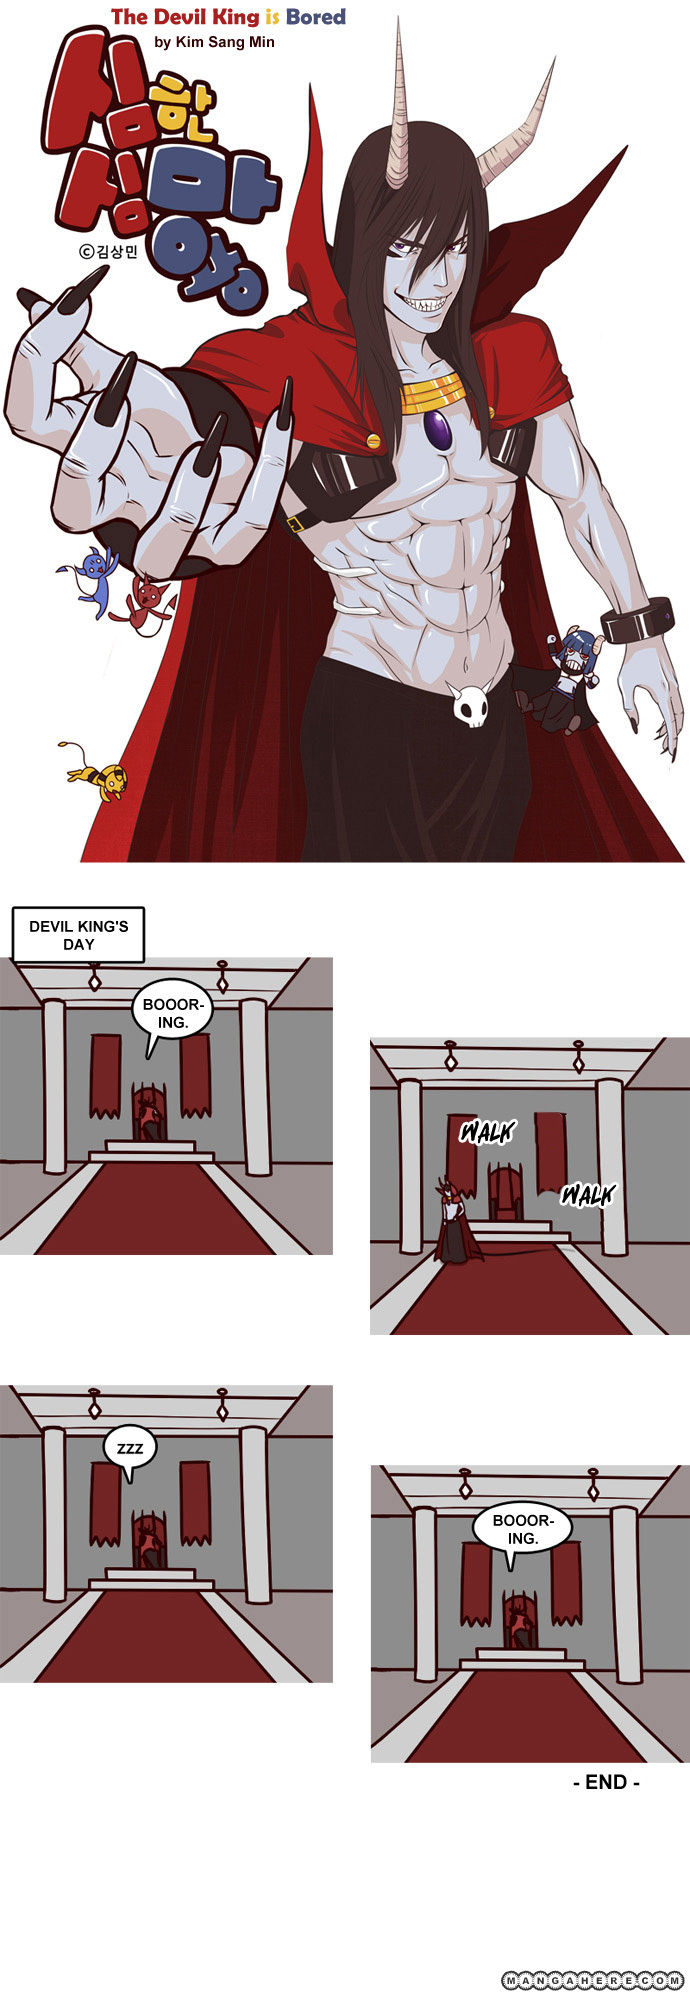 The Devil King Is Bored 5 Page 1